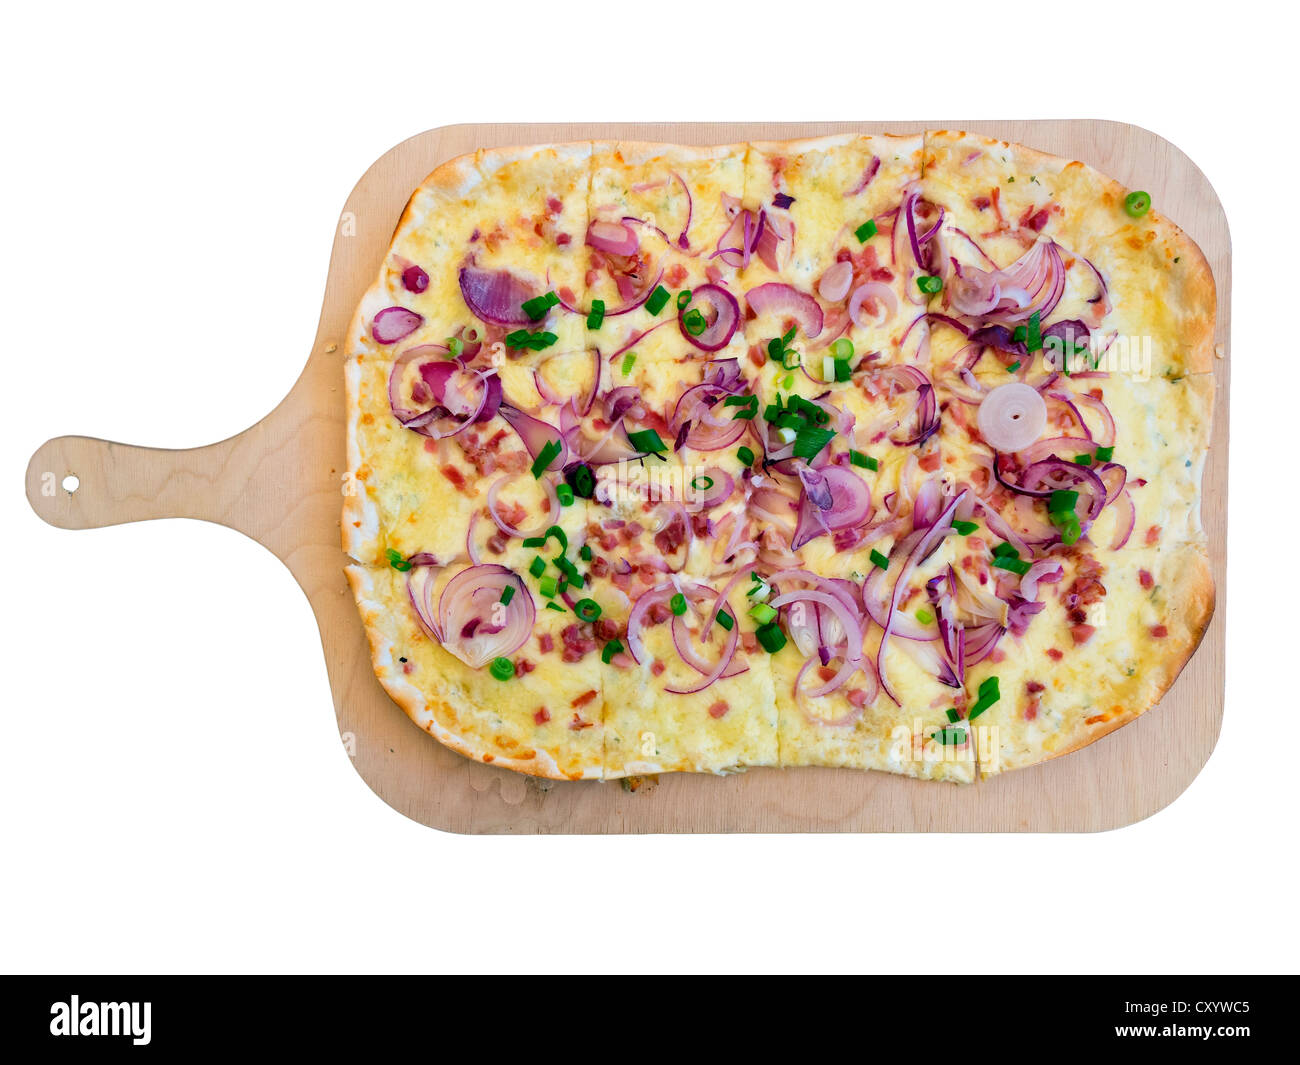 Flammkuchen, Tarte Flambee with onions and bacon, savoury, served on a wooden board - Stock Image